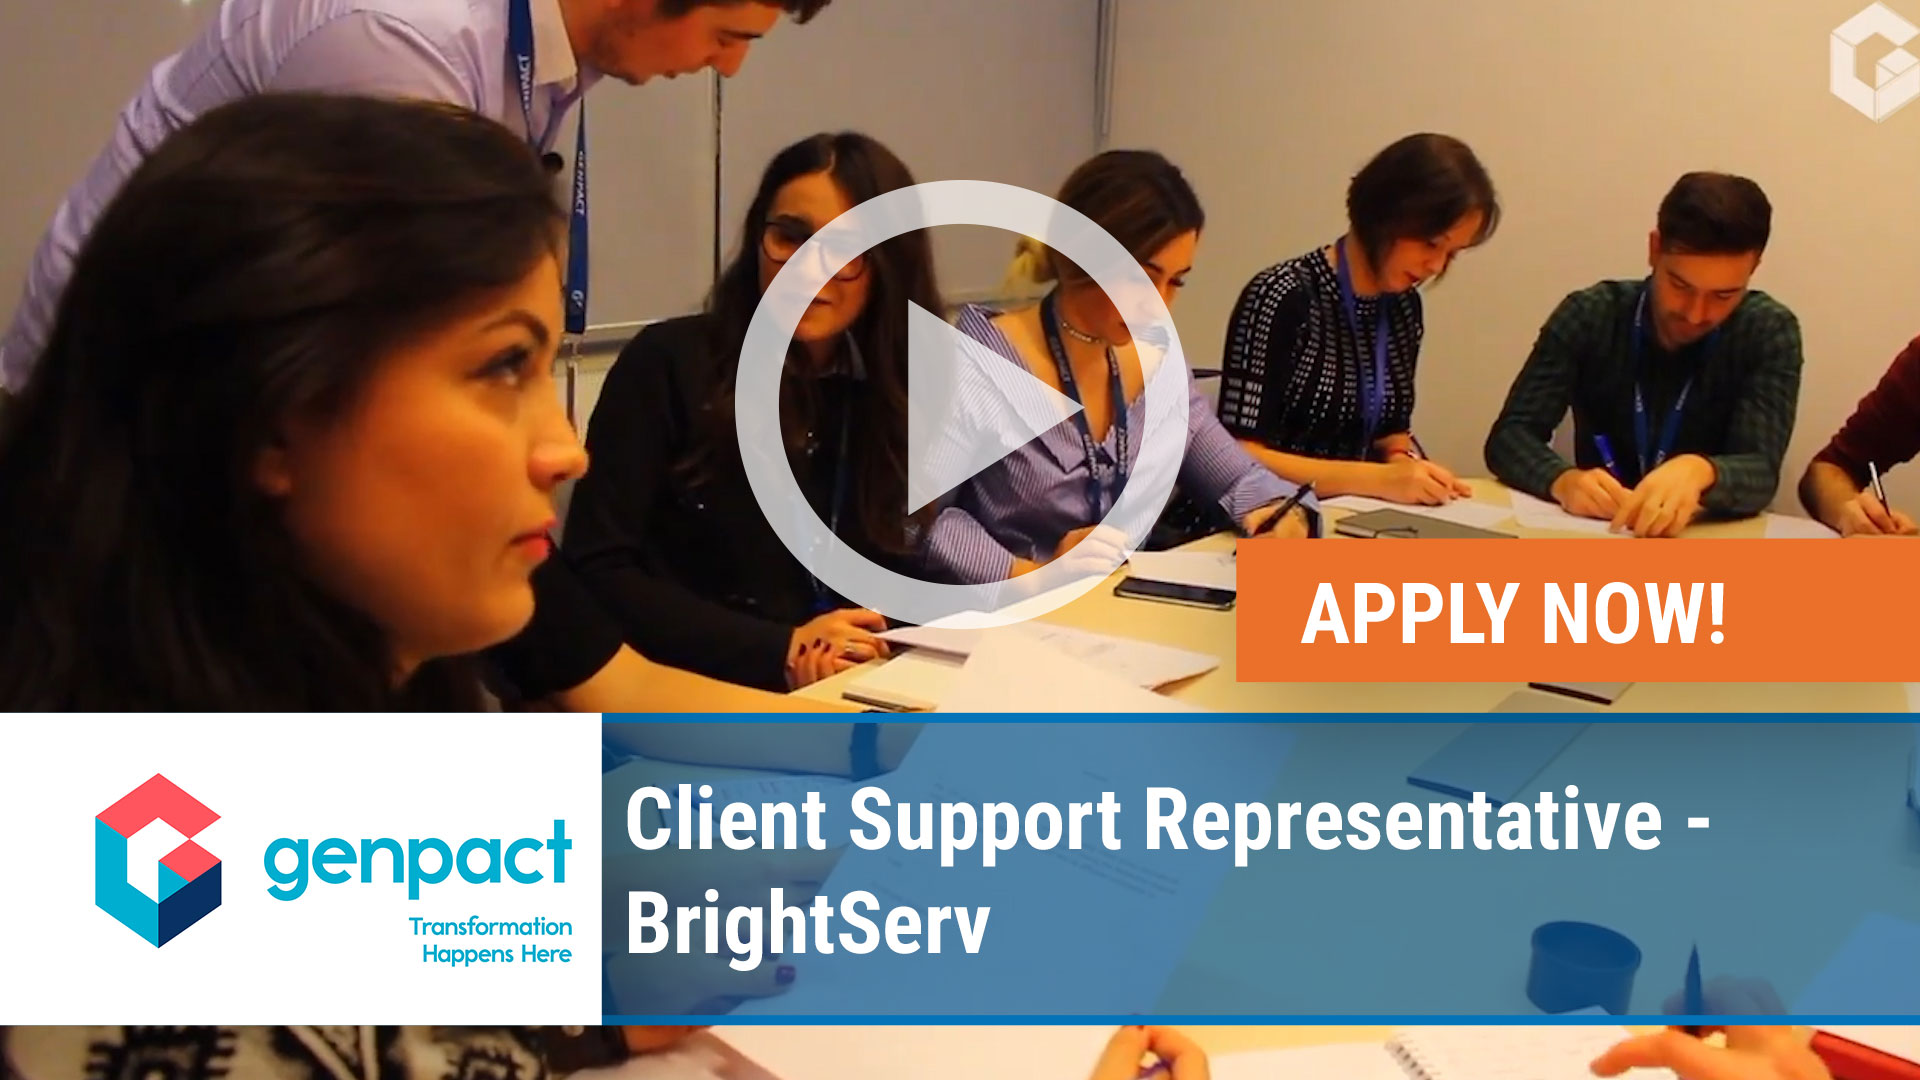 Watch our careers video for available job opening Client Support Representative - BrightServ in Sandy Springs, Georgia